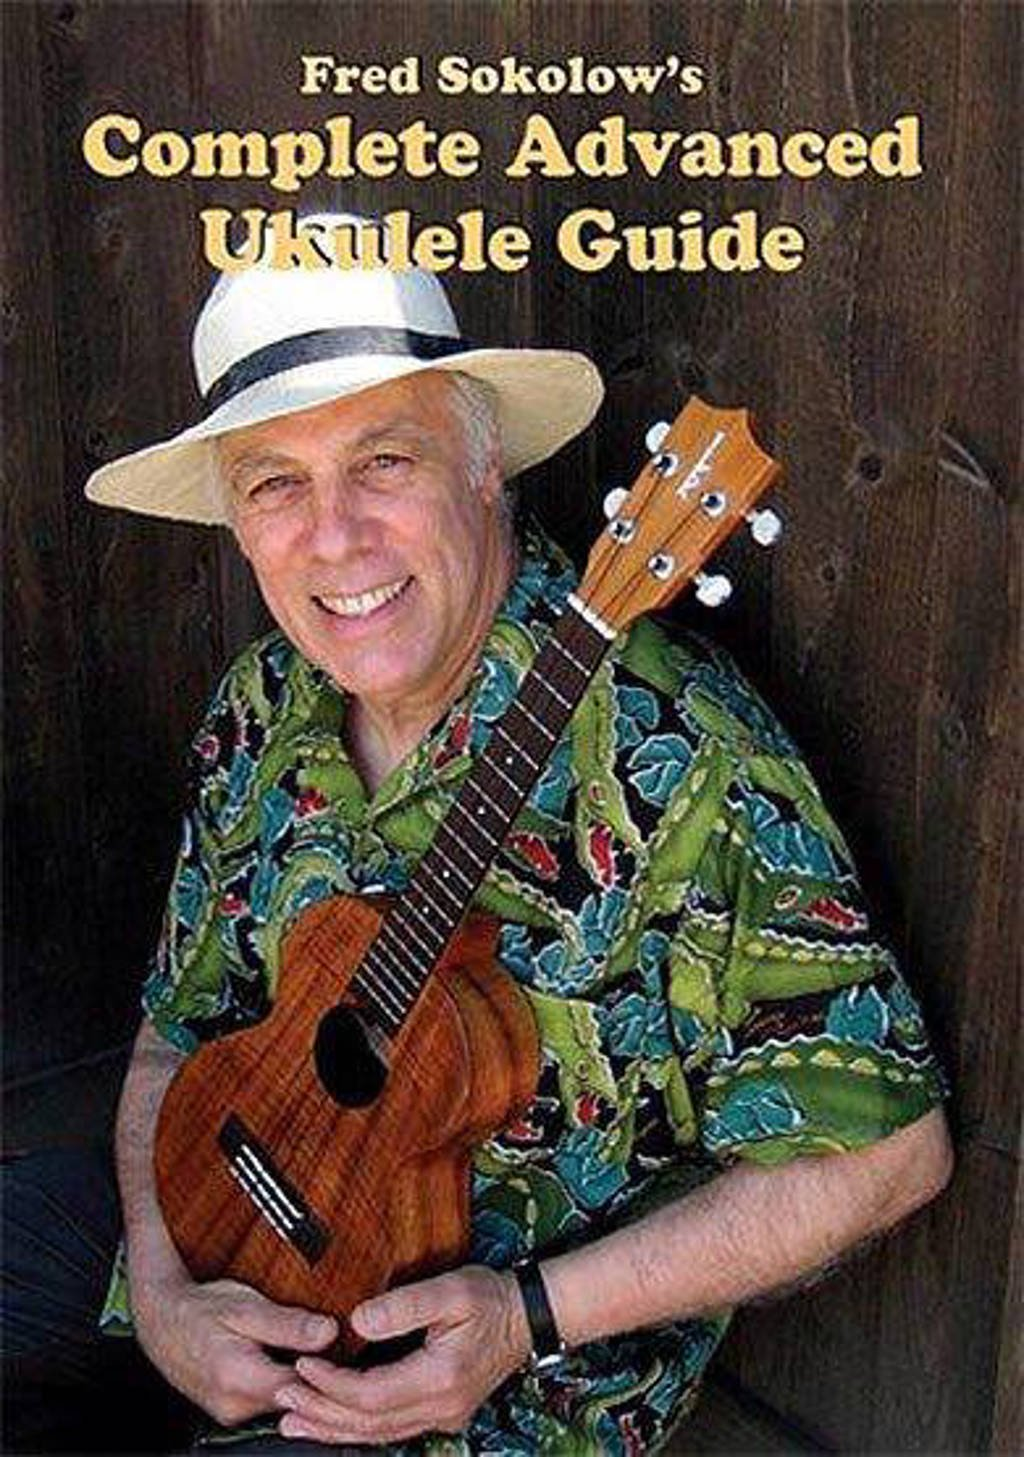 Fred Sokolow - Complete ukulele guide 3 (DVD)